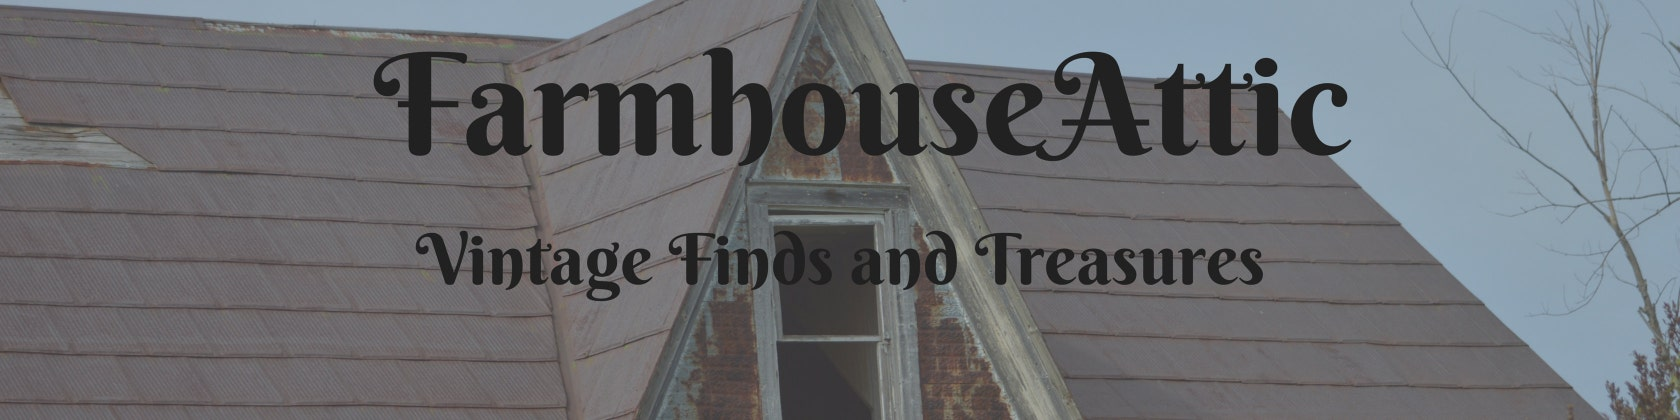 Vintage Finds And Treasures From The By Farmhouseattic On Etsy